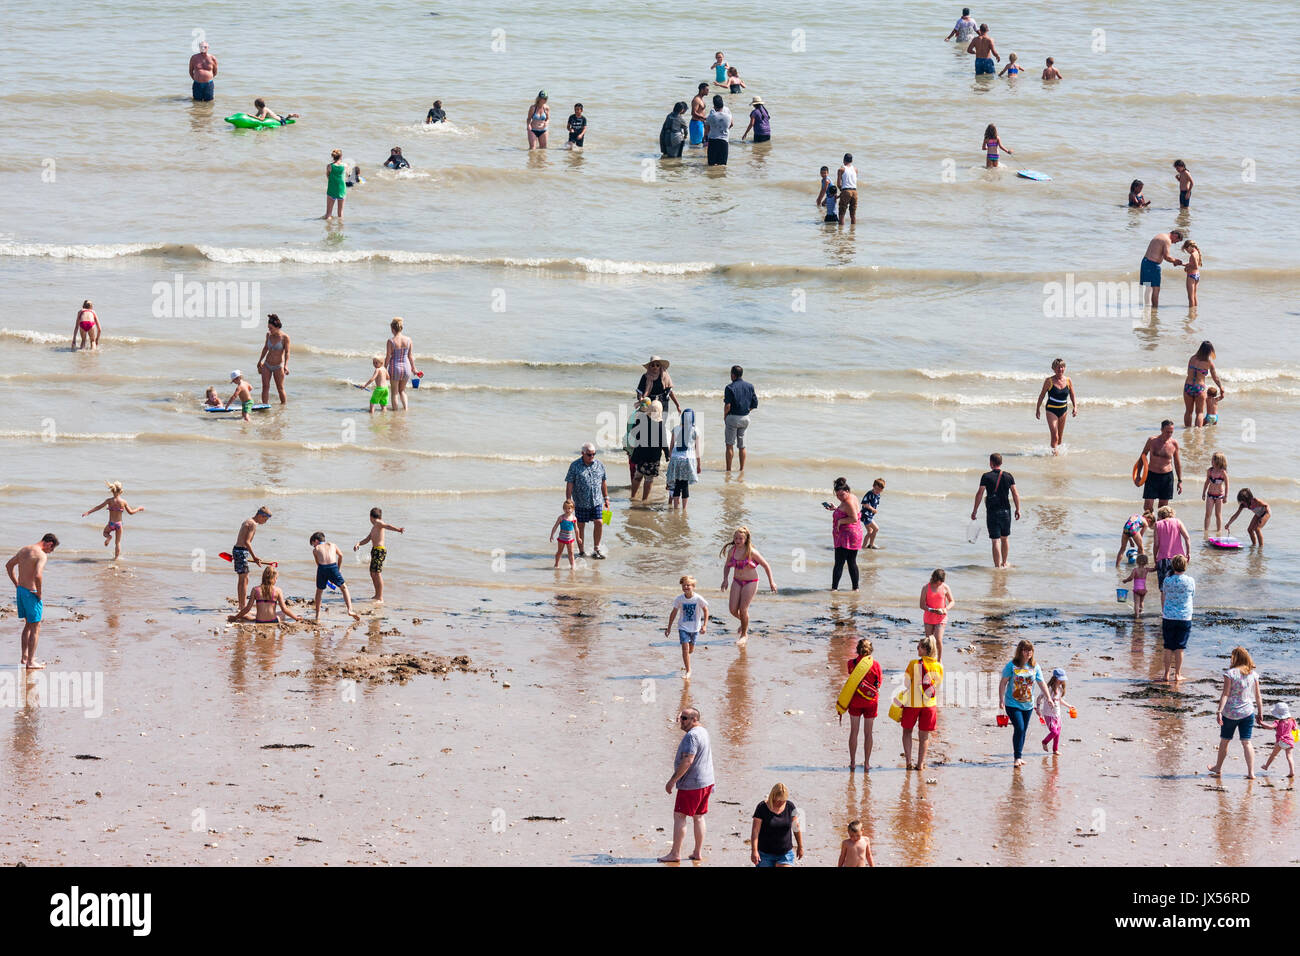 Broadstairs, Kent, England, 14th August 2017. High temperatures and a day of nothing but sunshine saw for the second - Stock Image